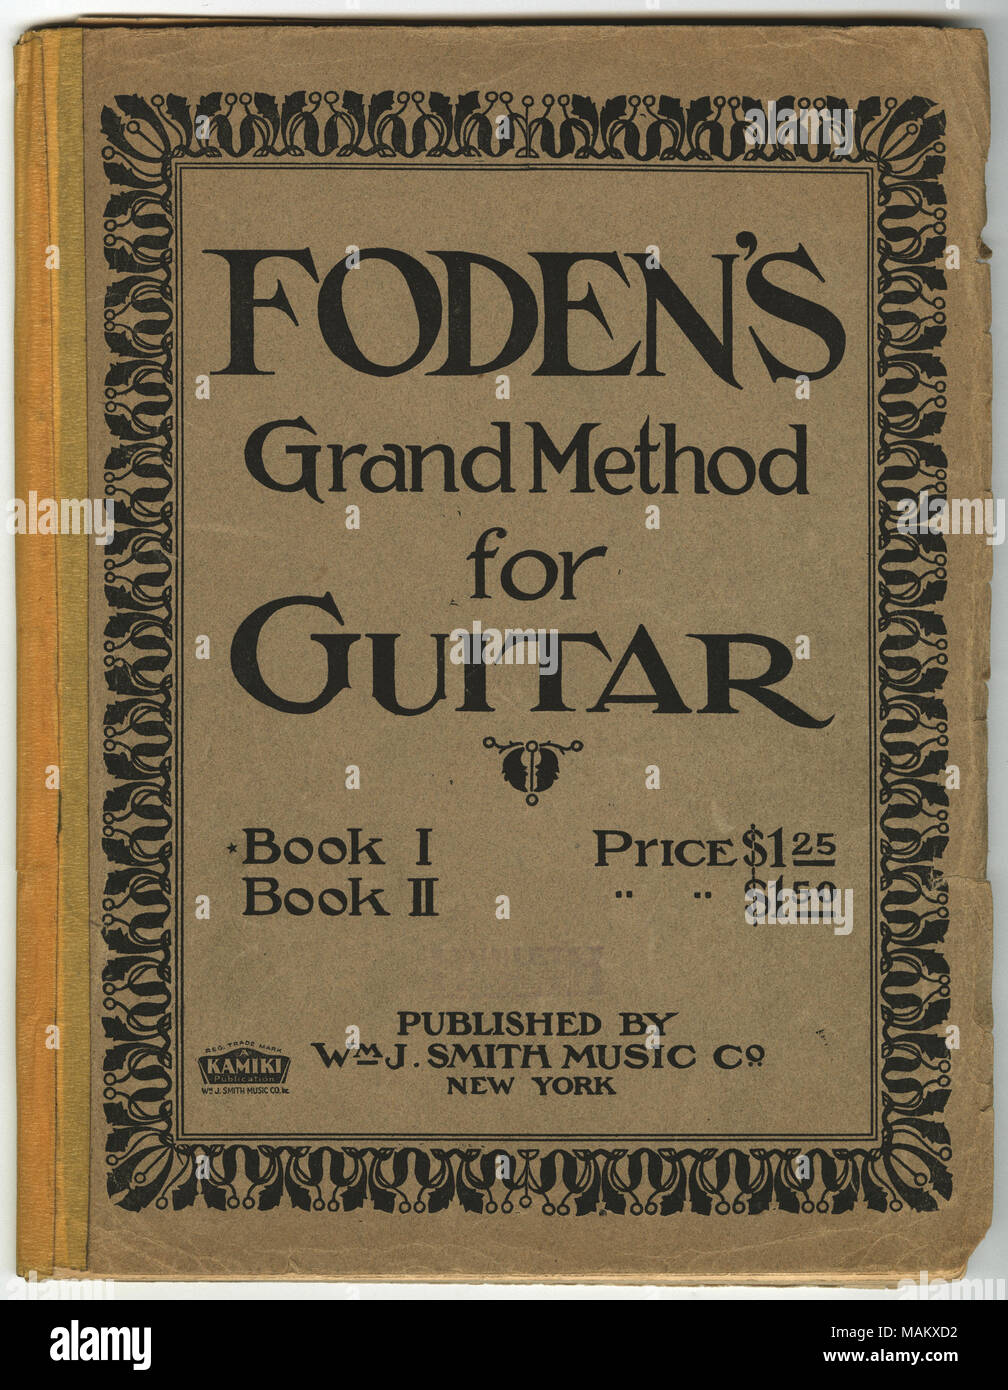 Includes printed instructions on how to play the guitar and music to play on the guitar. Title: Foden's Grand Method for Guitar Book 1, 1920  . 1920. William J. Smith Music Co. - Stock Image